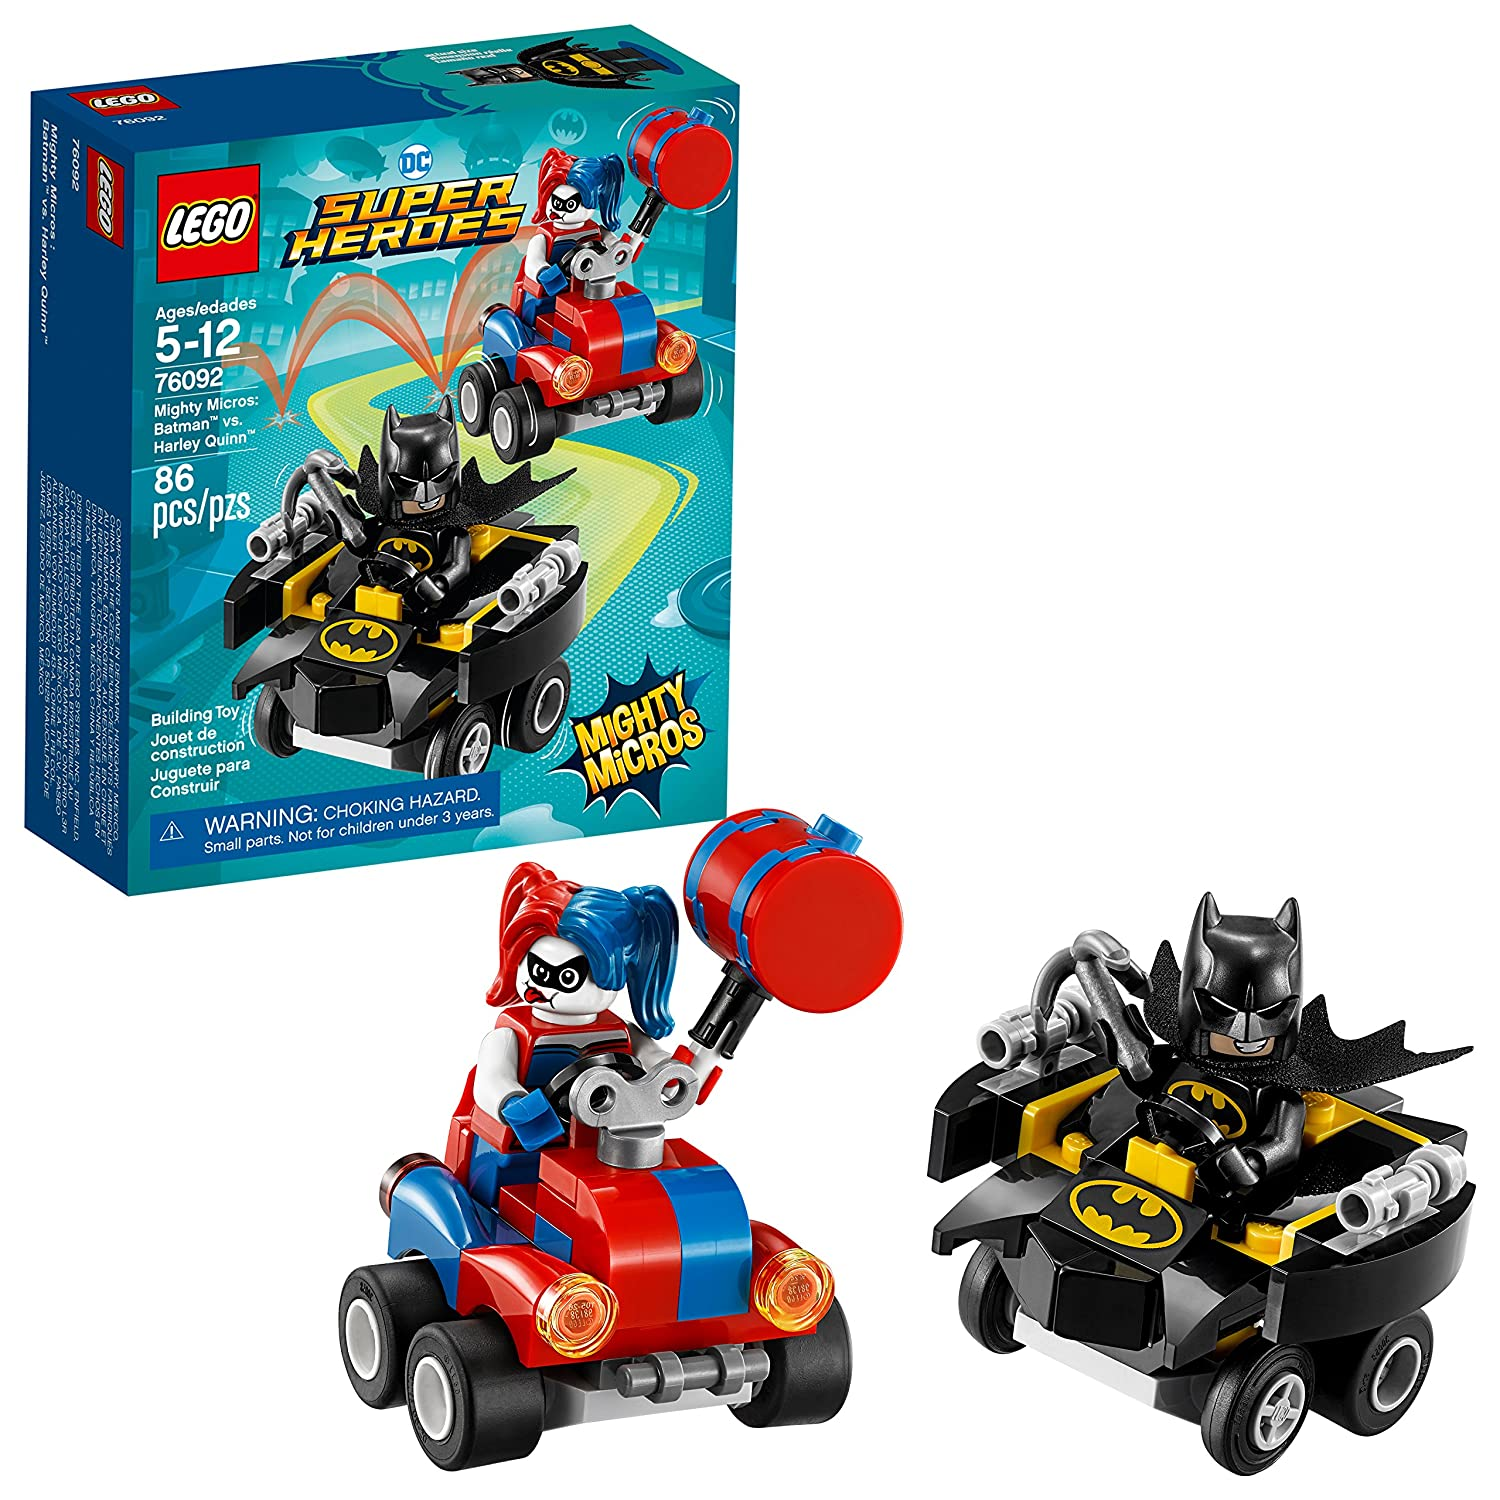 LEGO Superheroes 6212701 Mighty Micros: Batman Vs. Harley Quinn 76092 Building Kit (86 Piece)